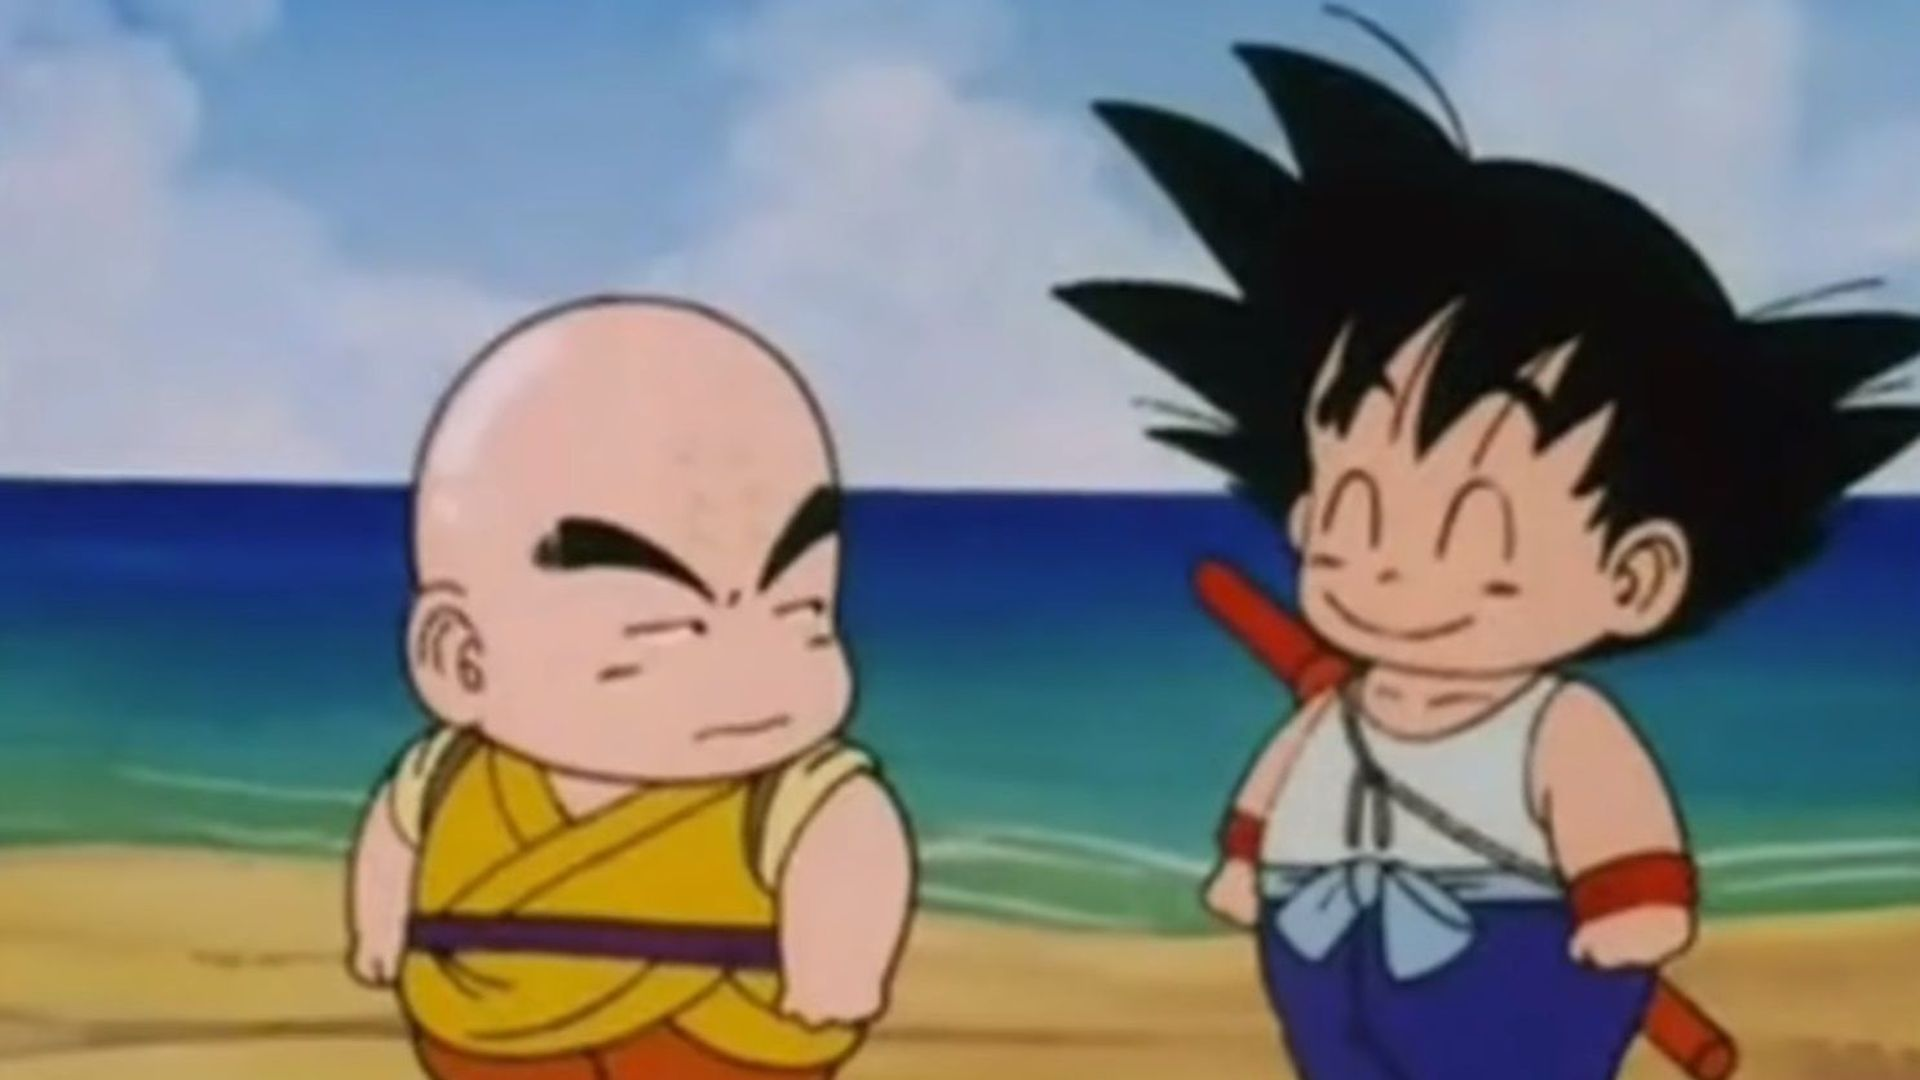 Howstuffworks: What Two Dragon Ball Z Characters Are You A